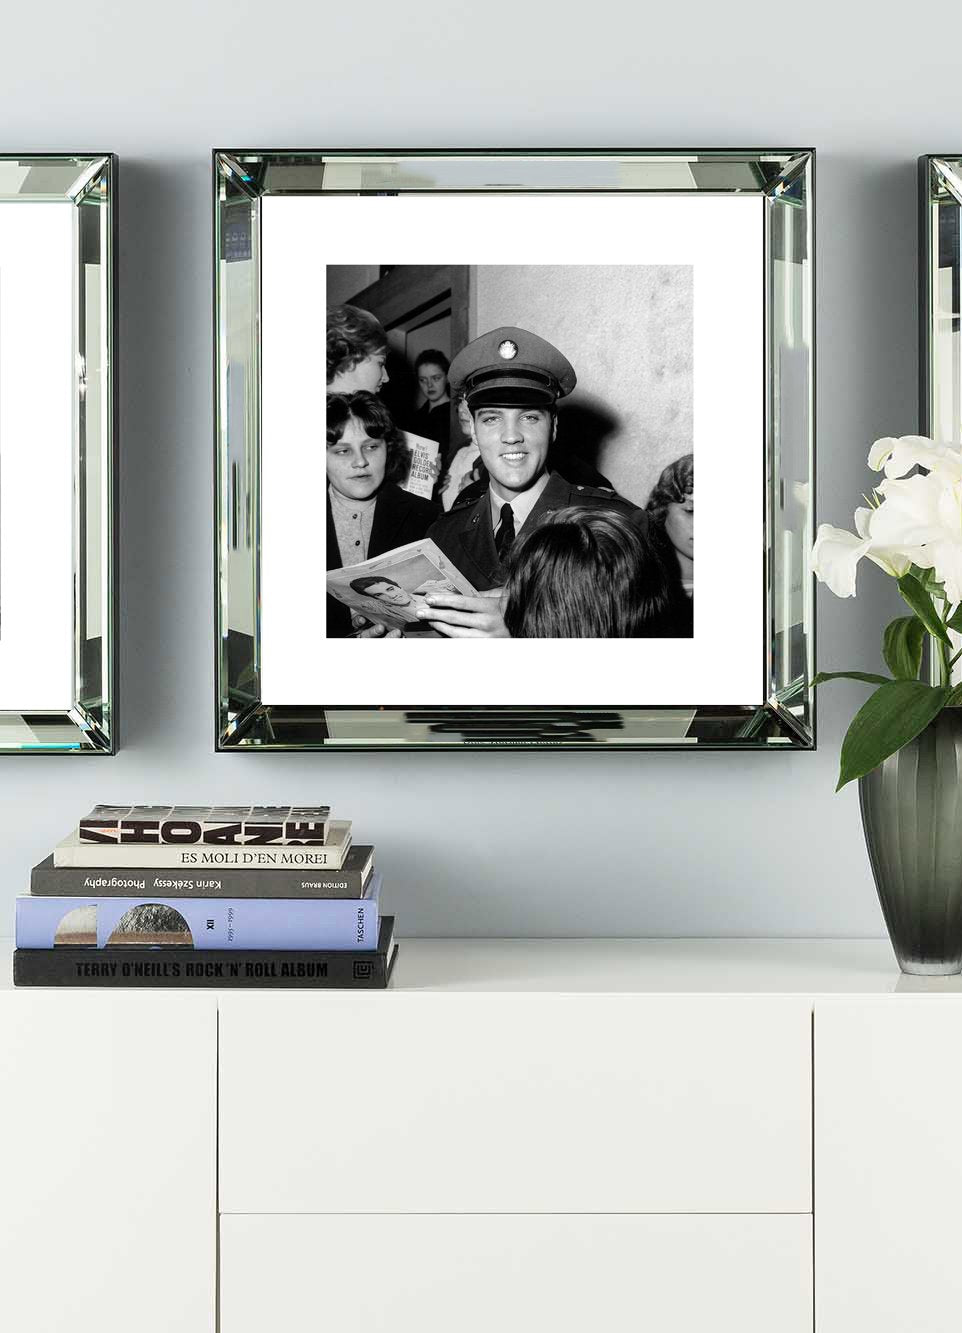 James Bond, Thunderball Casino  Mirror Frame Picture